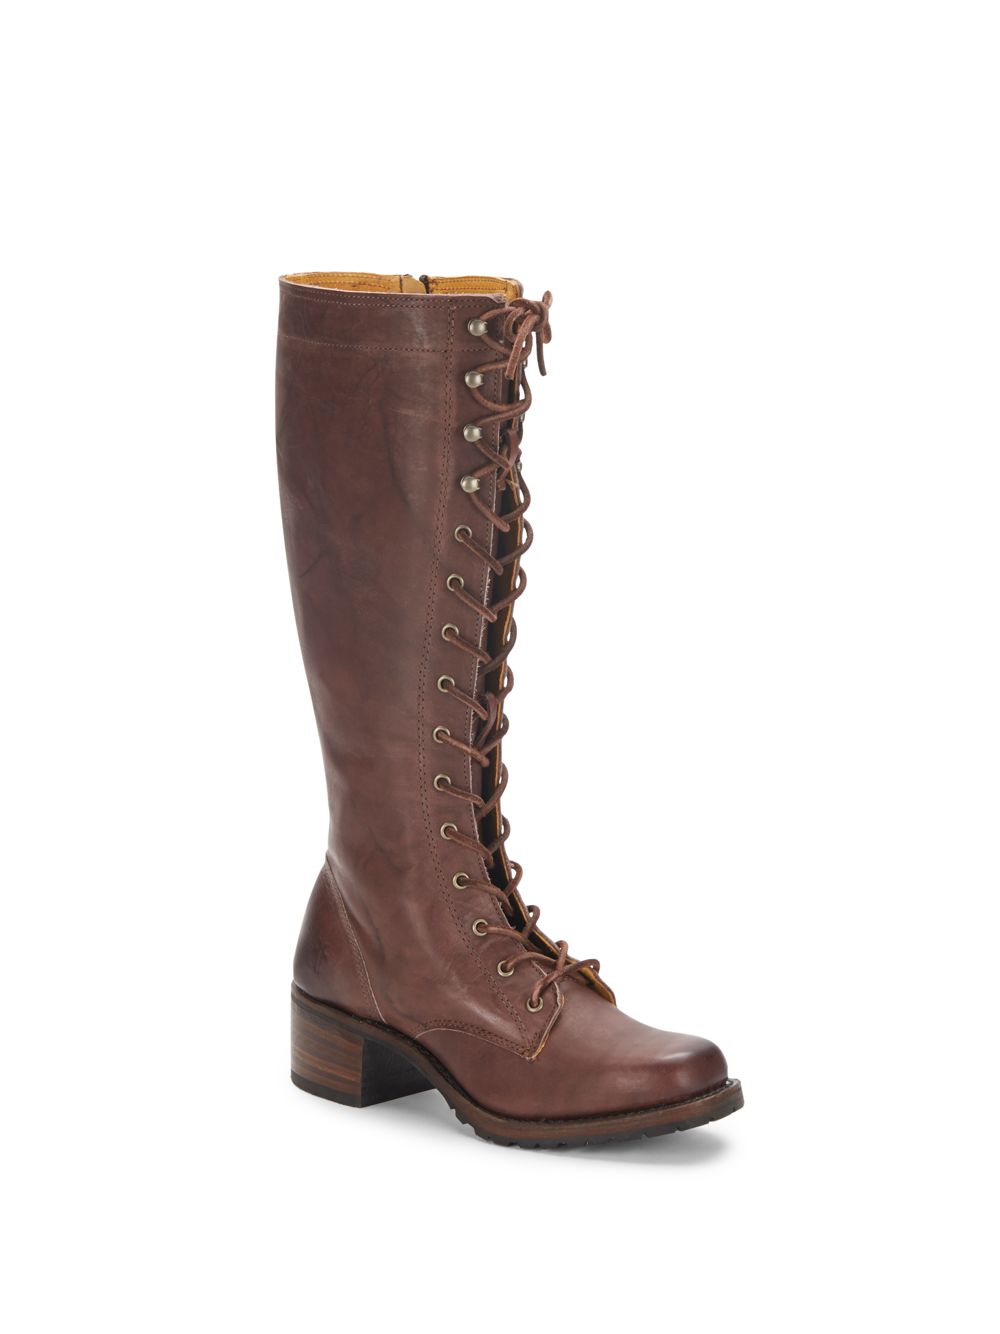 Frye Campus Lace Up Leather Lug Boots In Brown Lyst